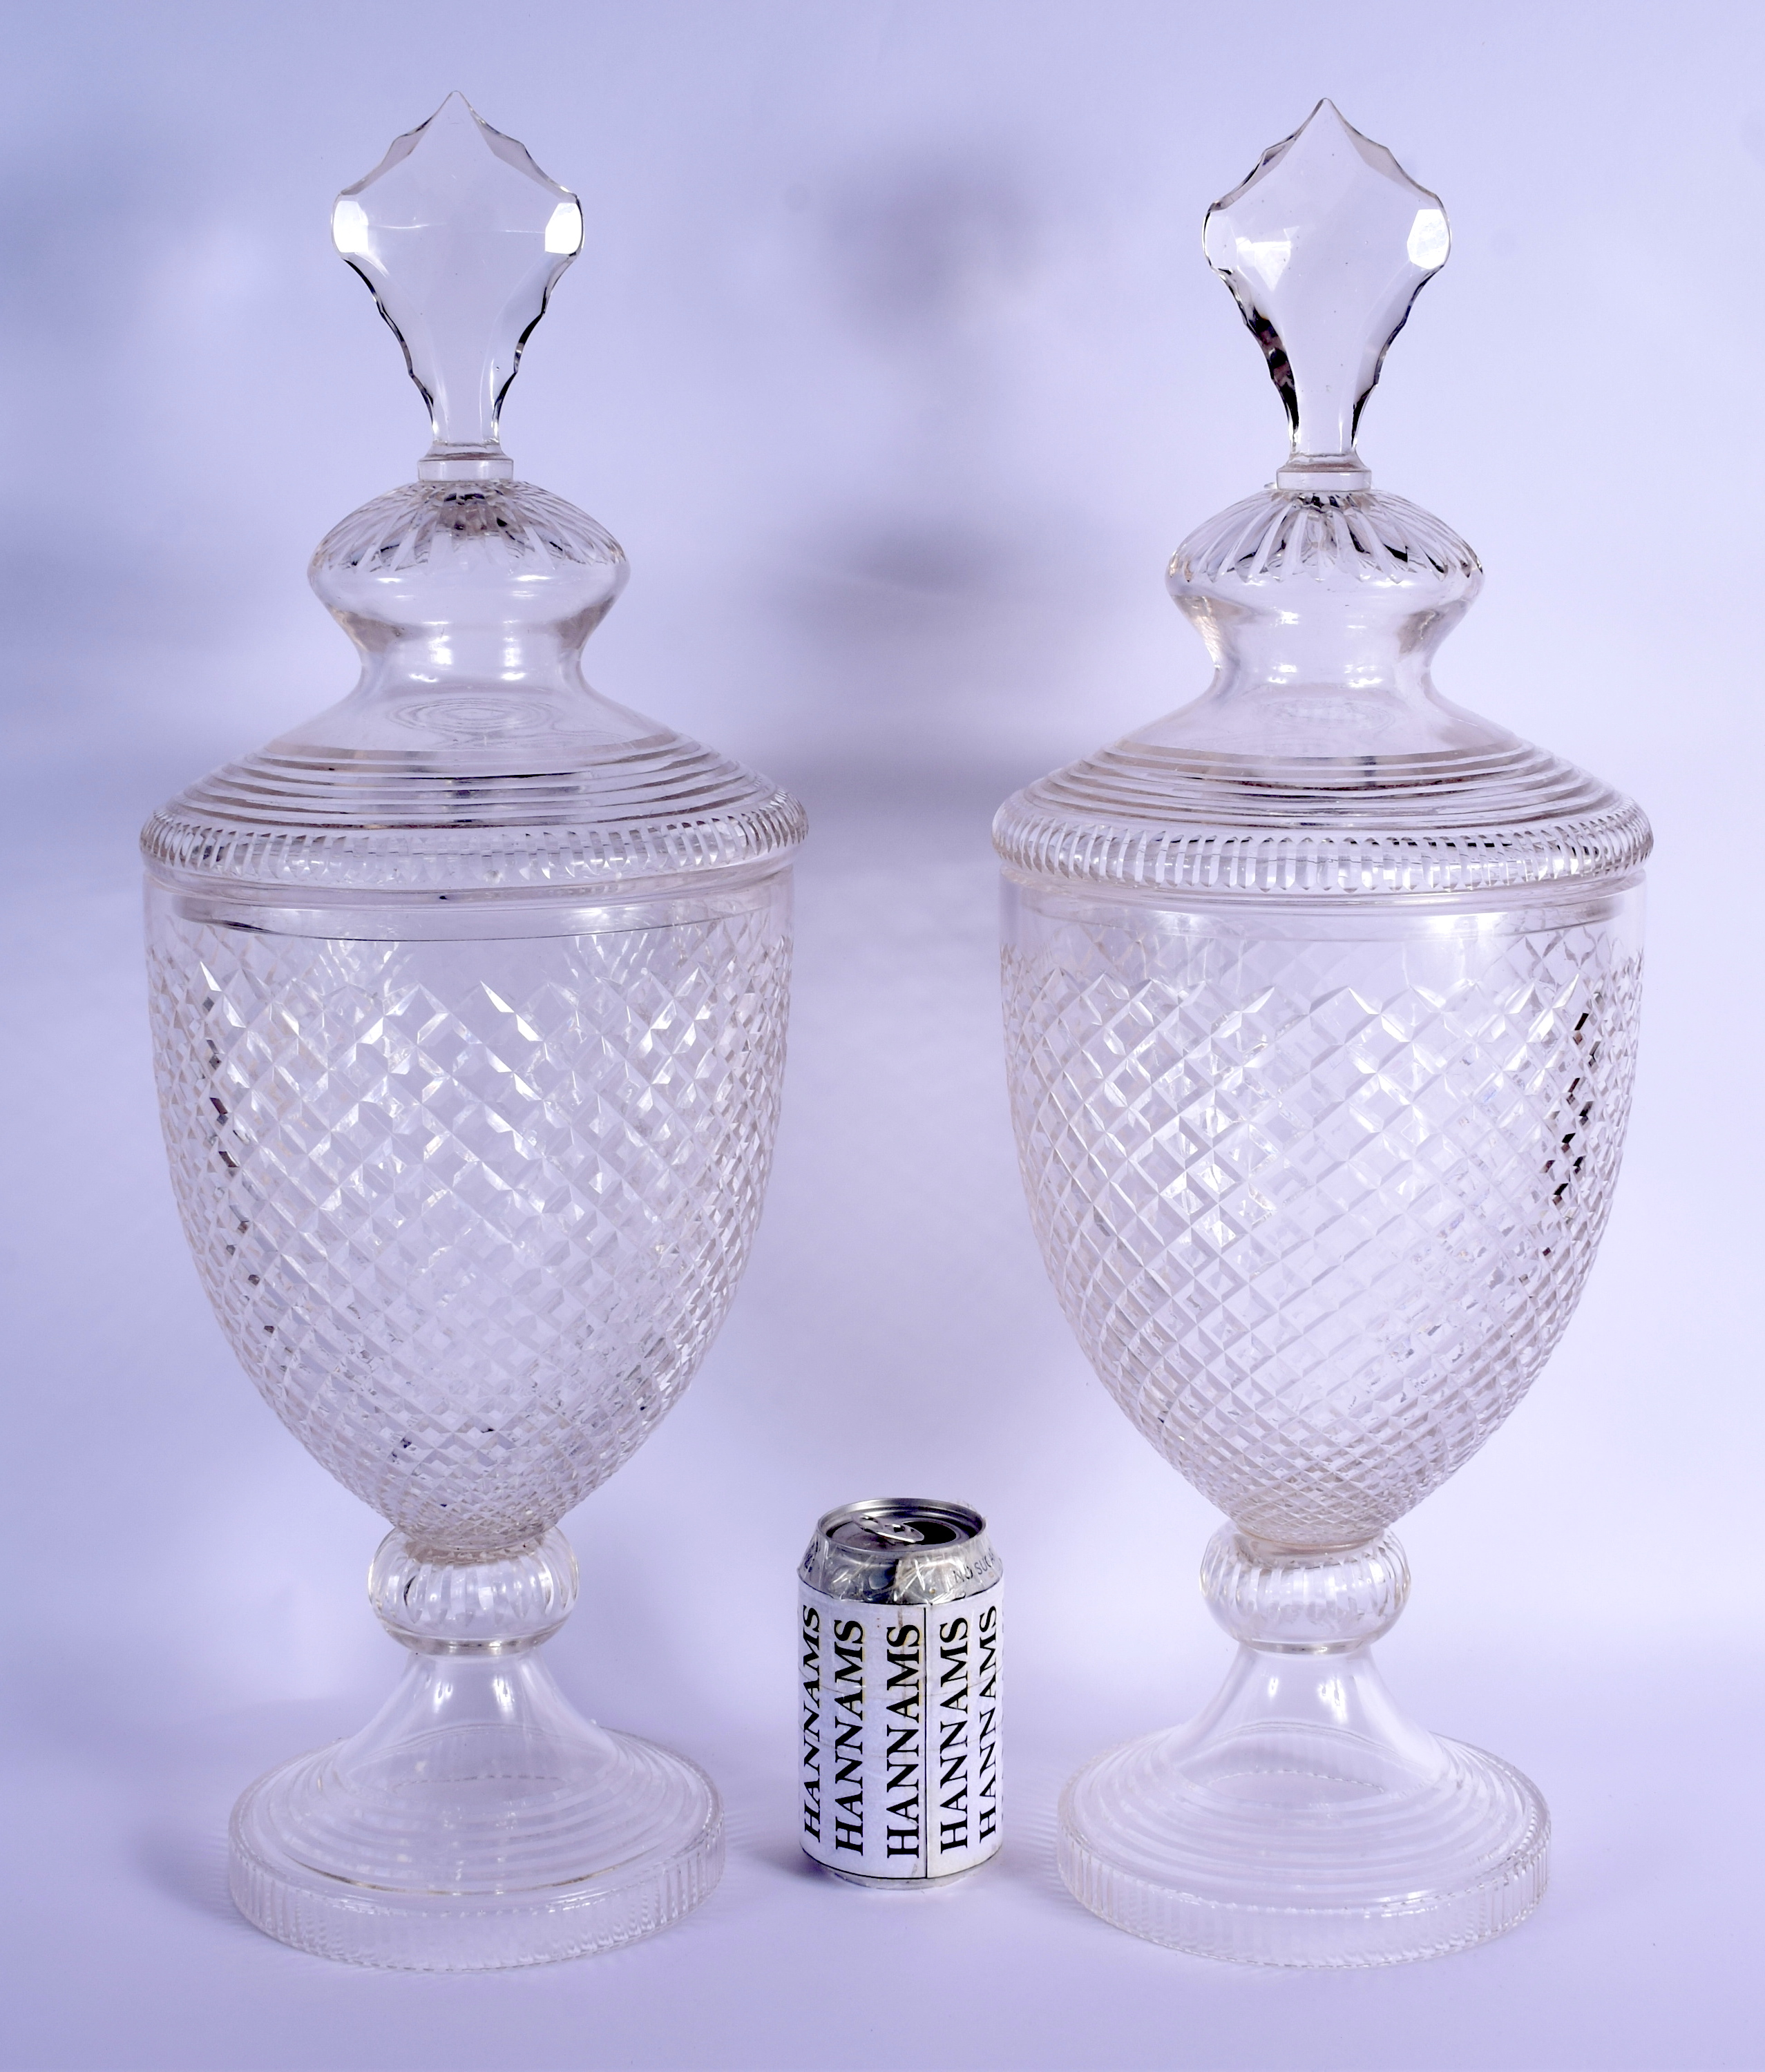 A PAIR OF CUT GLASS STORM LAMPS AND COVERS. 53 cm high.